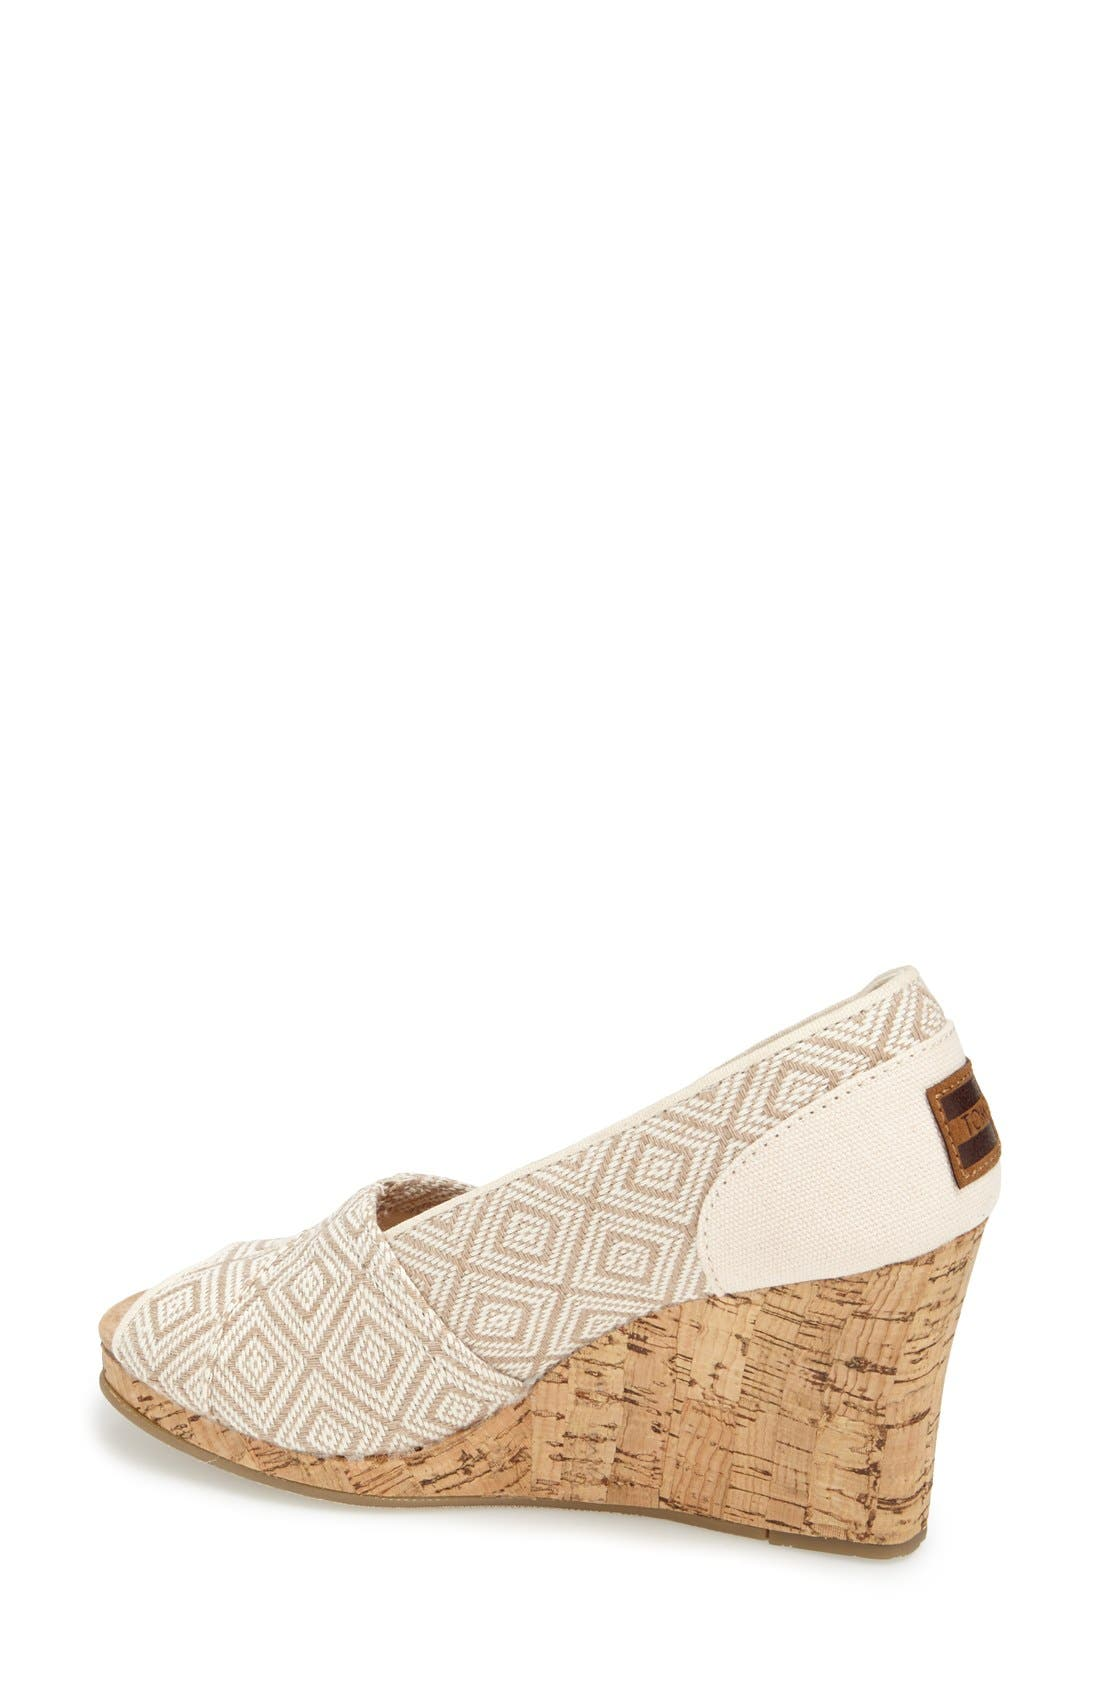 Alternate Image 2  - TOMS 'Classic' Woven Wedge Sandal (Women)